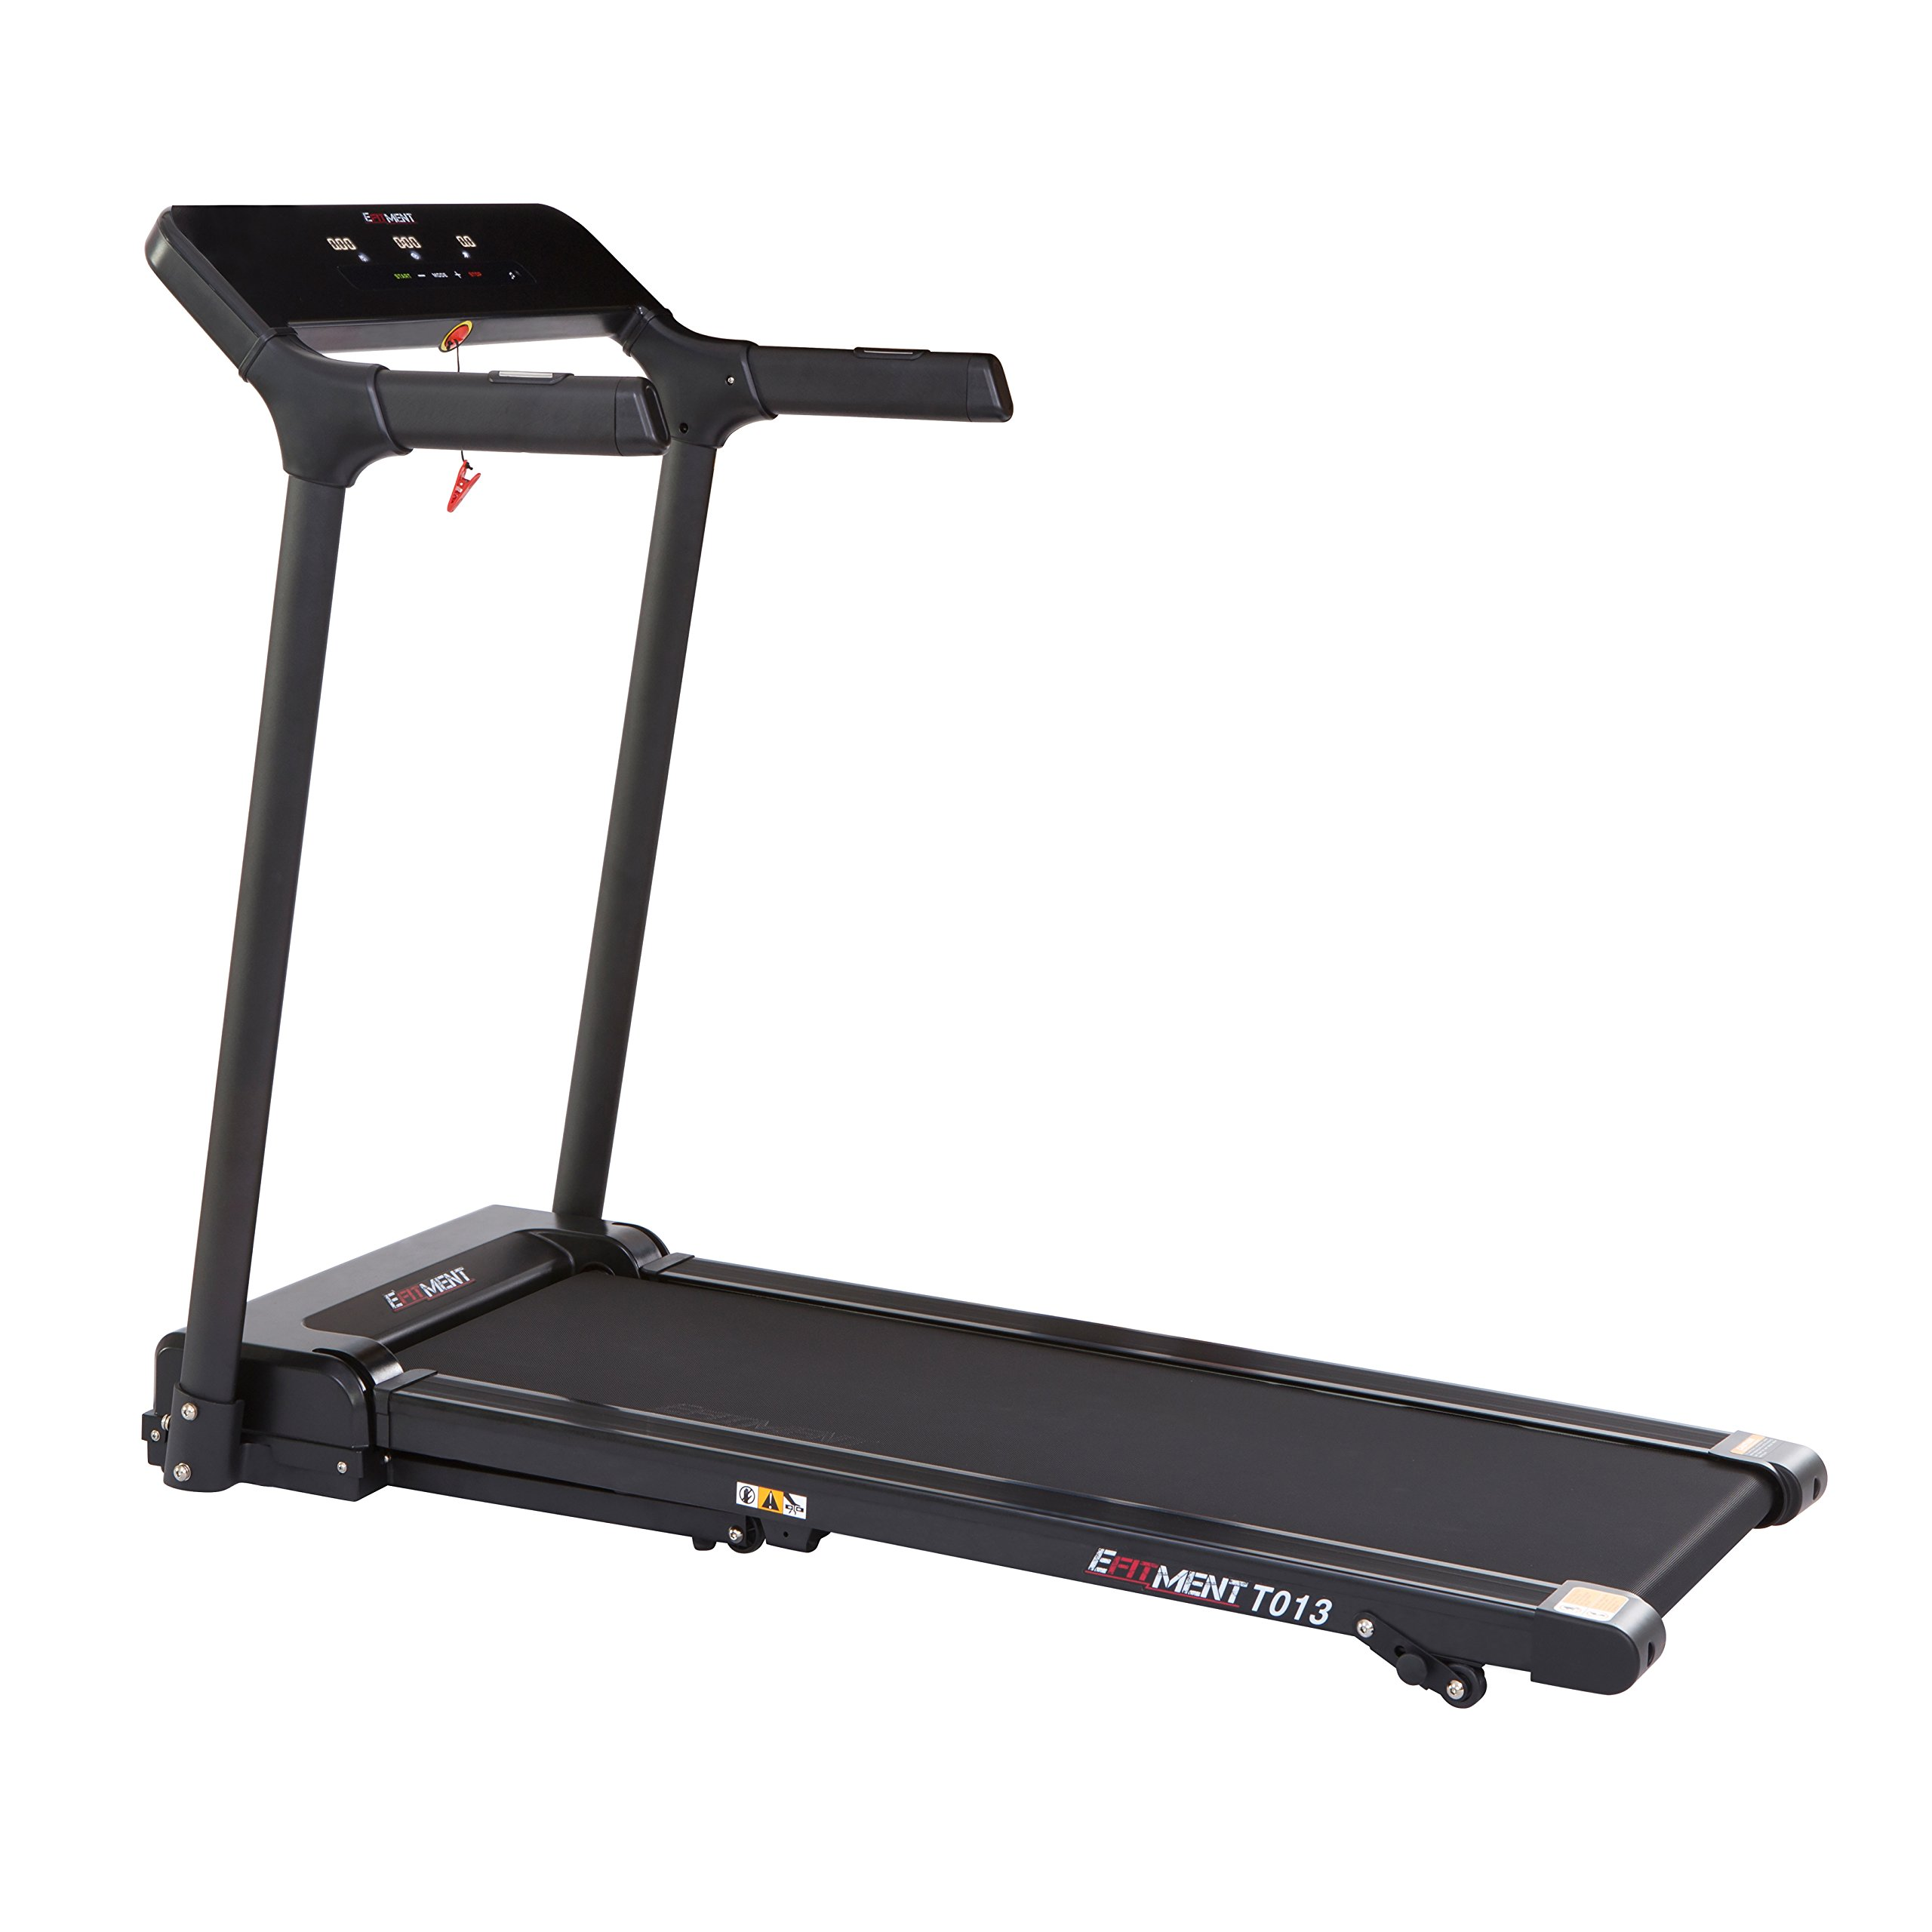 Slimline Motorized Treadmill with Bluetooth, Folding and Incline for Running & Walking by EFITMENT - T013